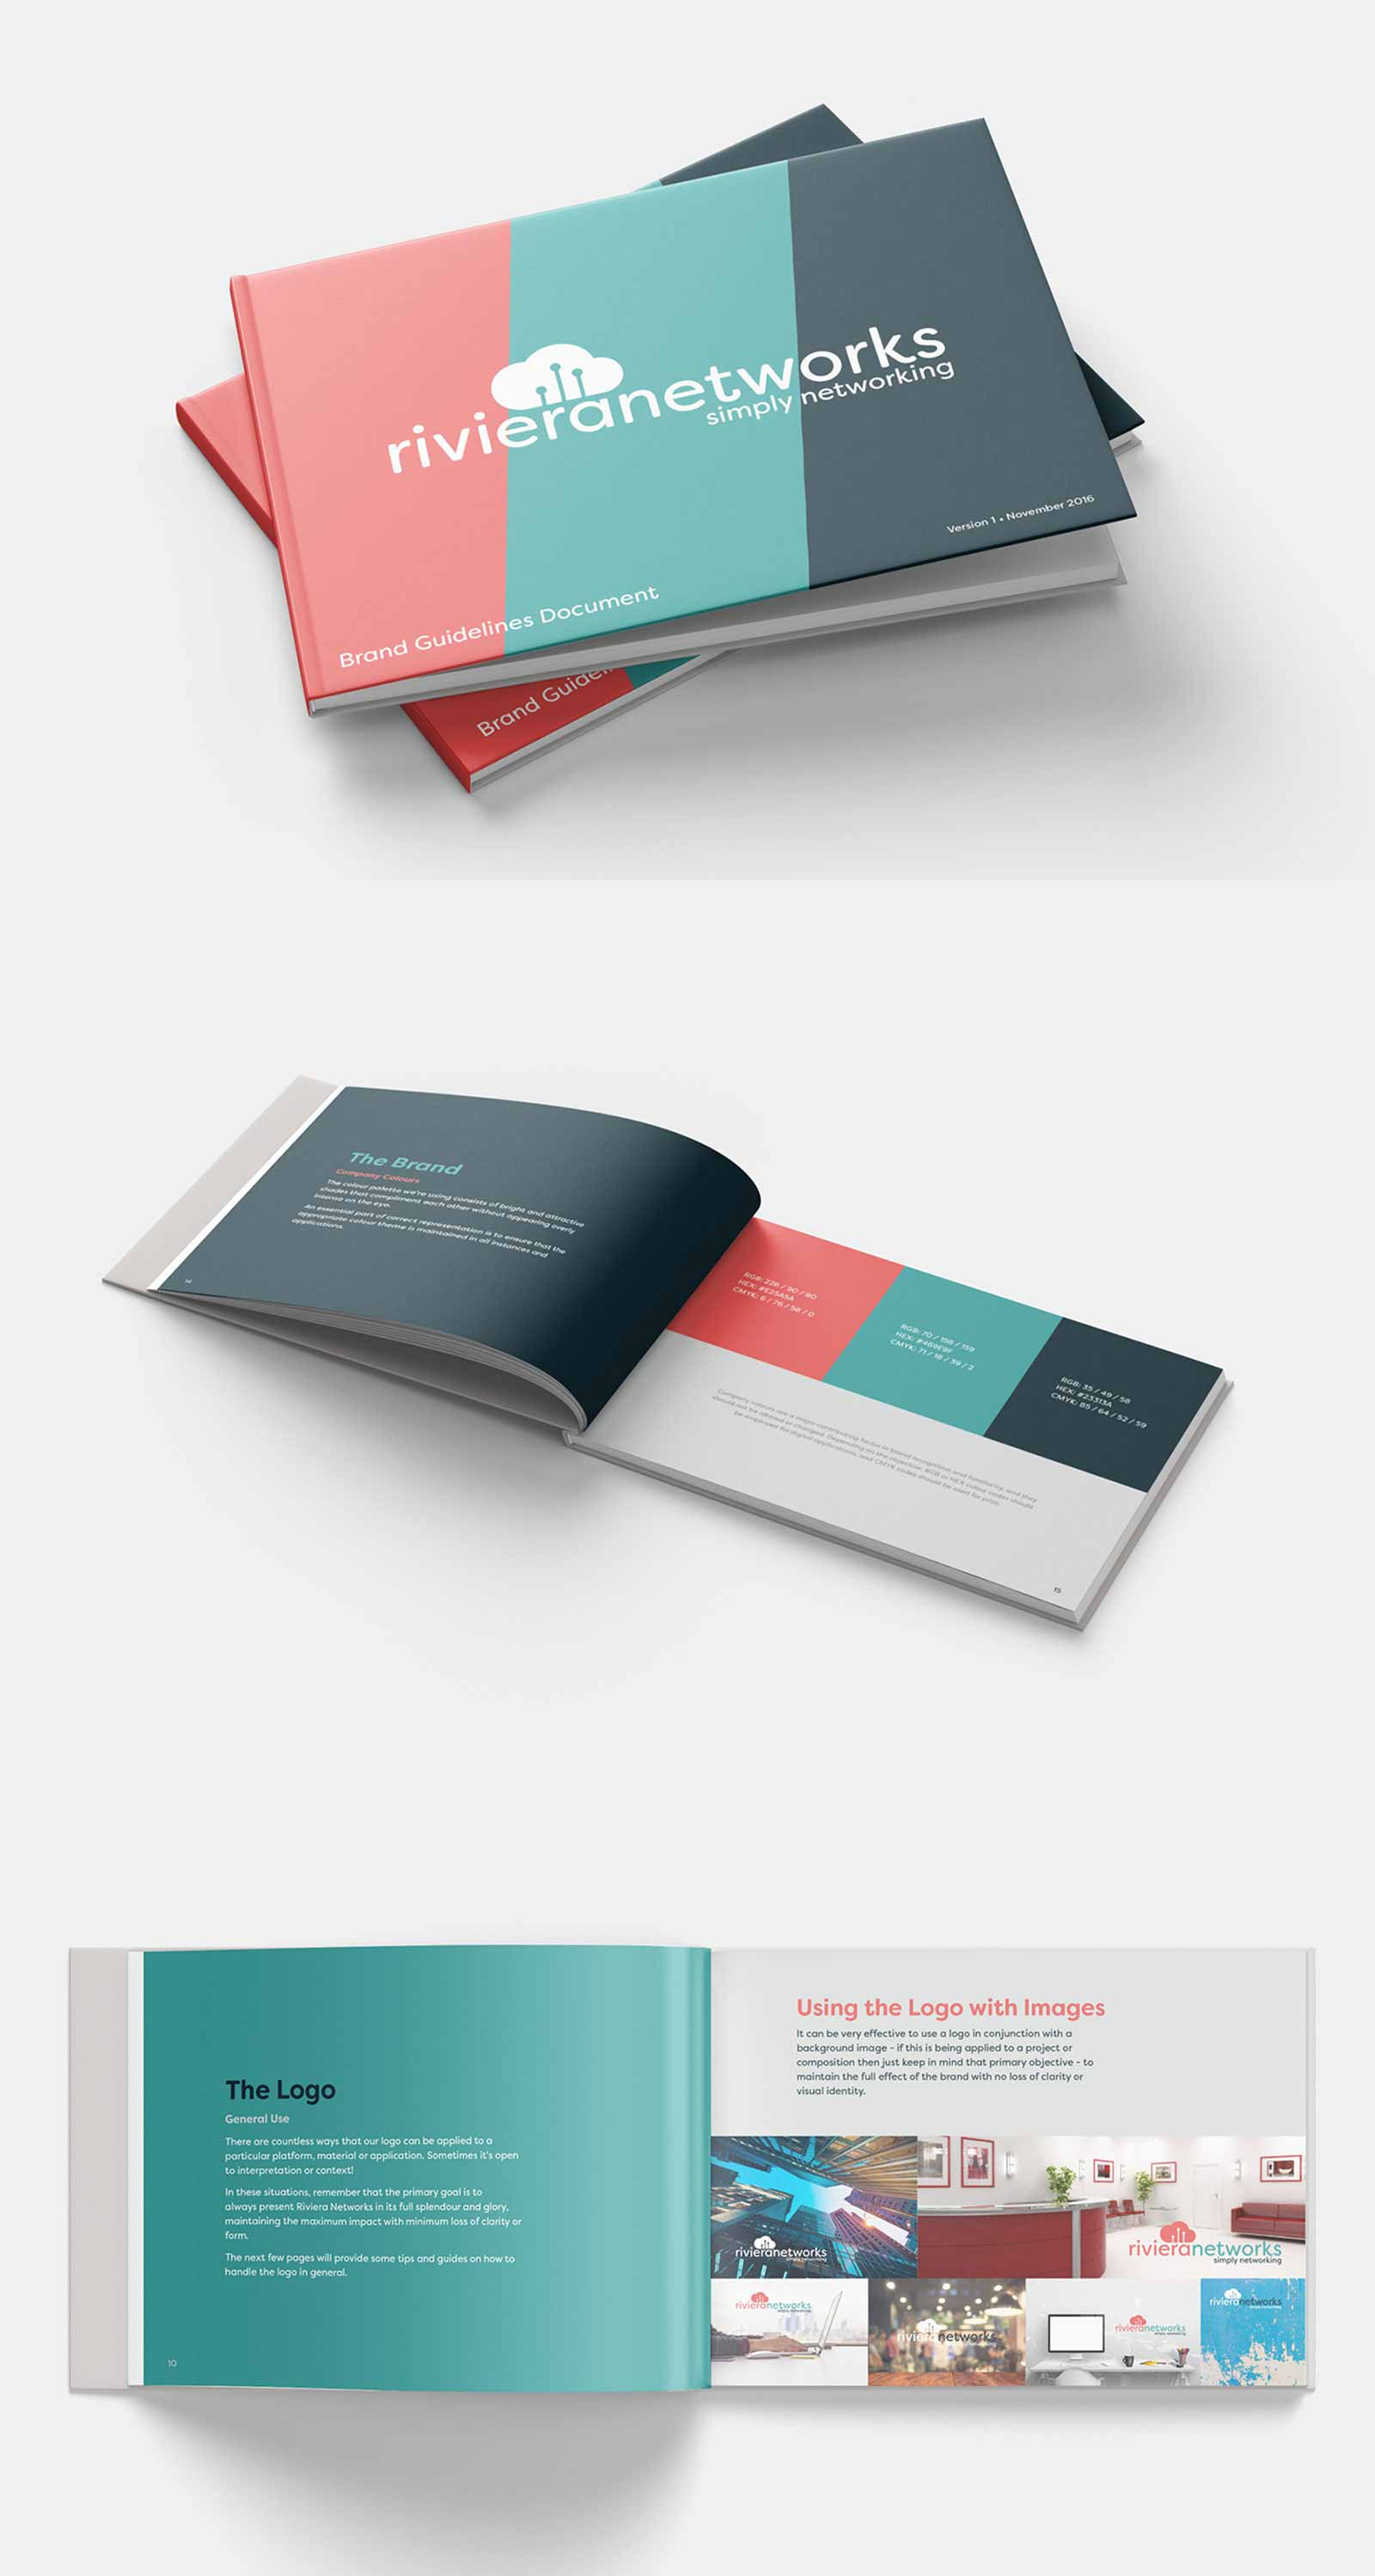 Riviera Networks Corporate Brand Guidelines